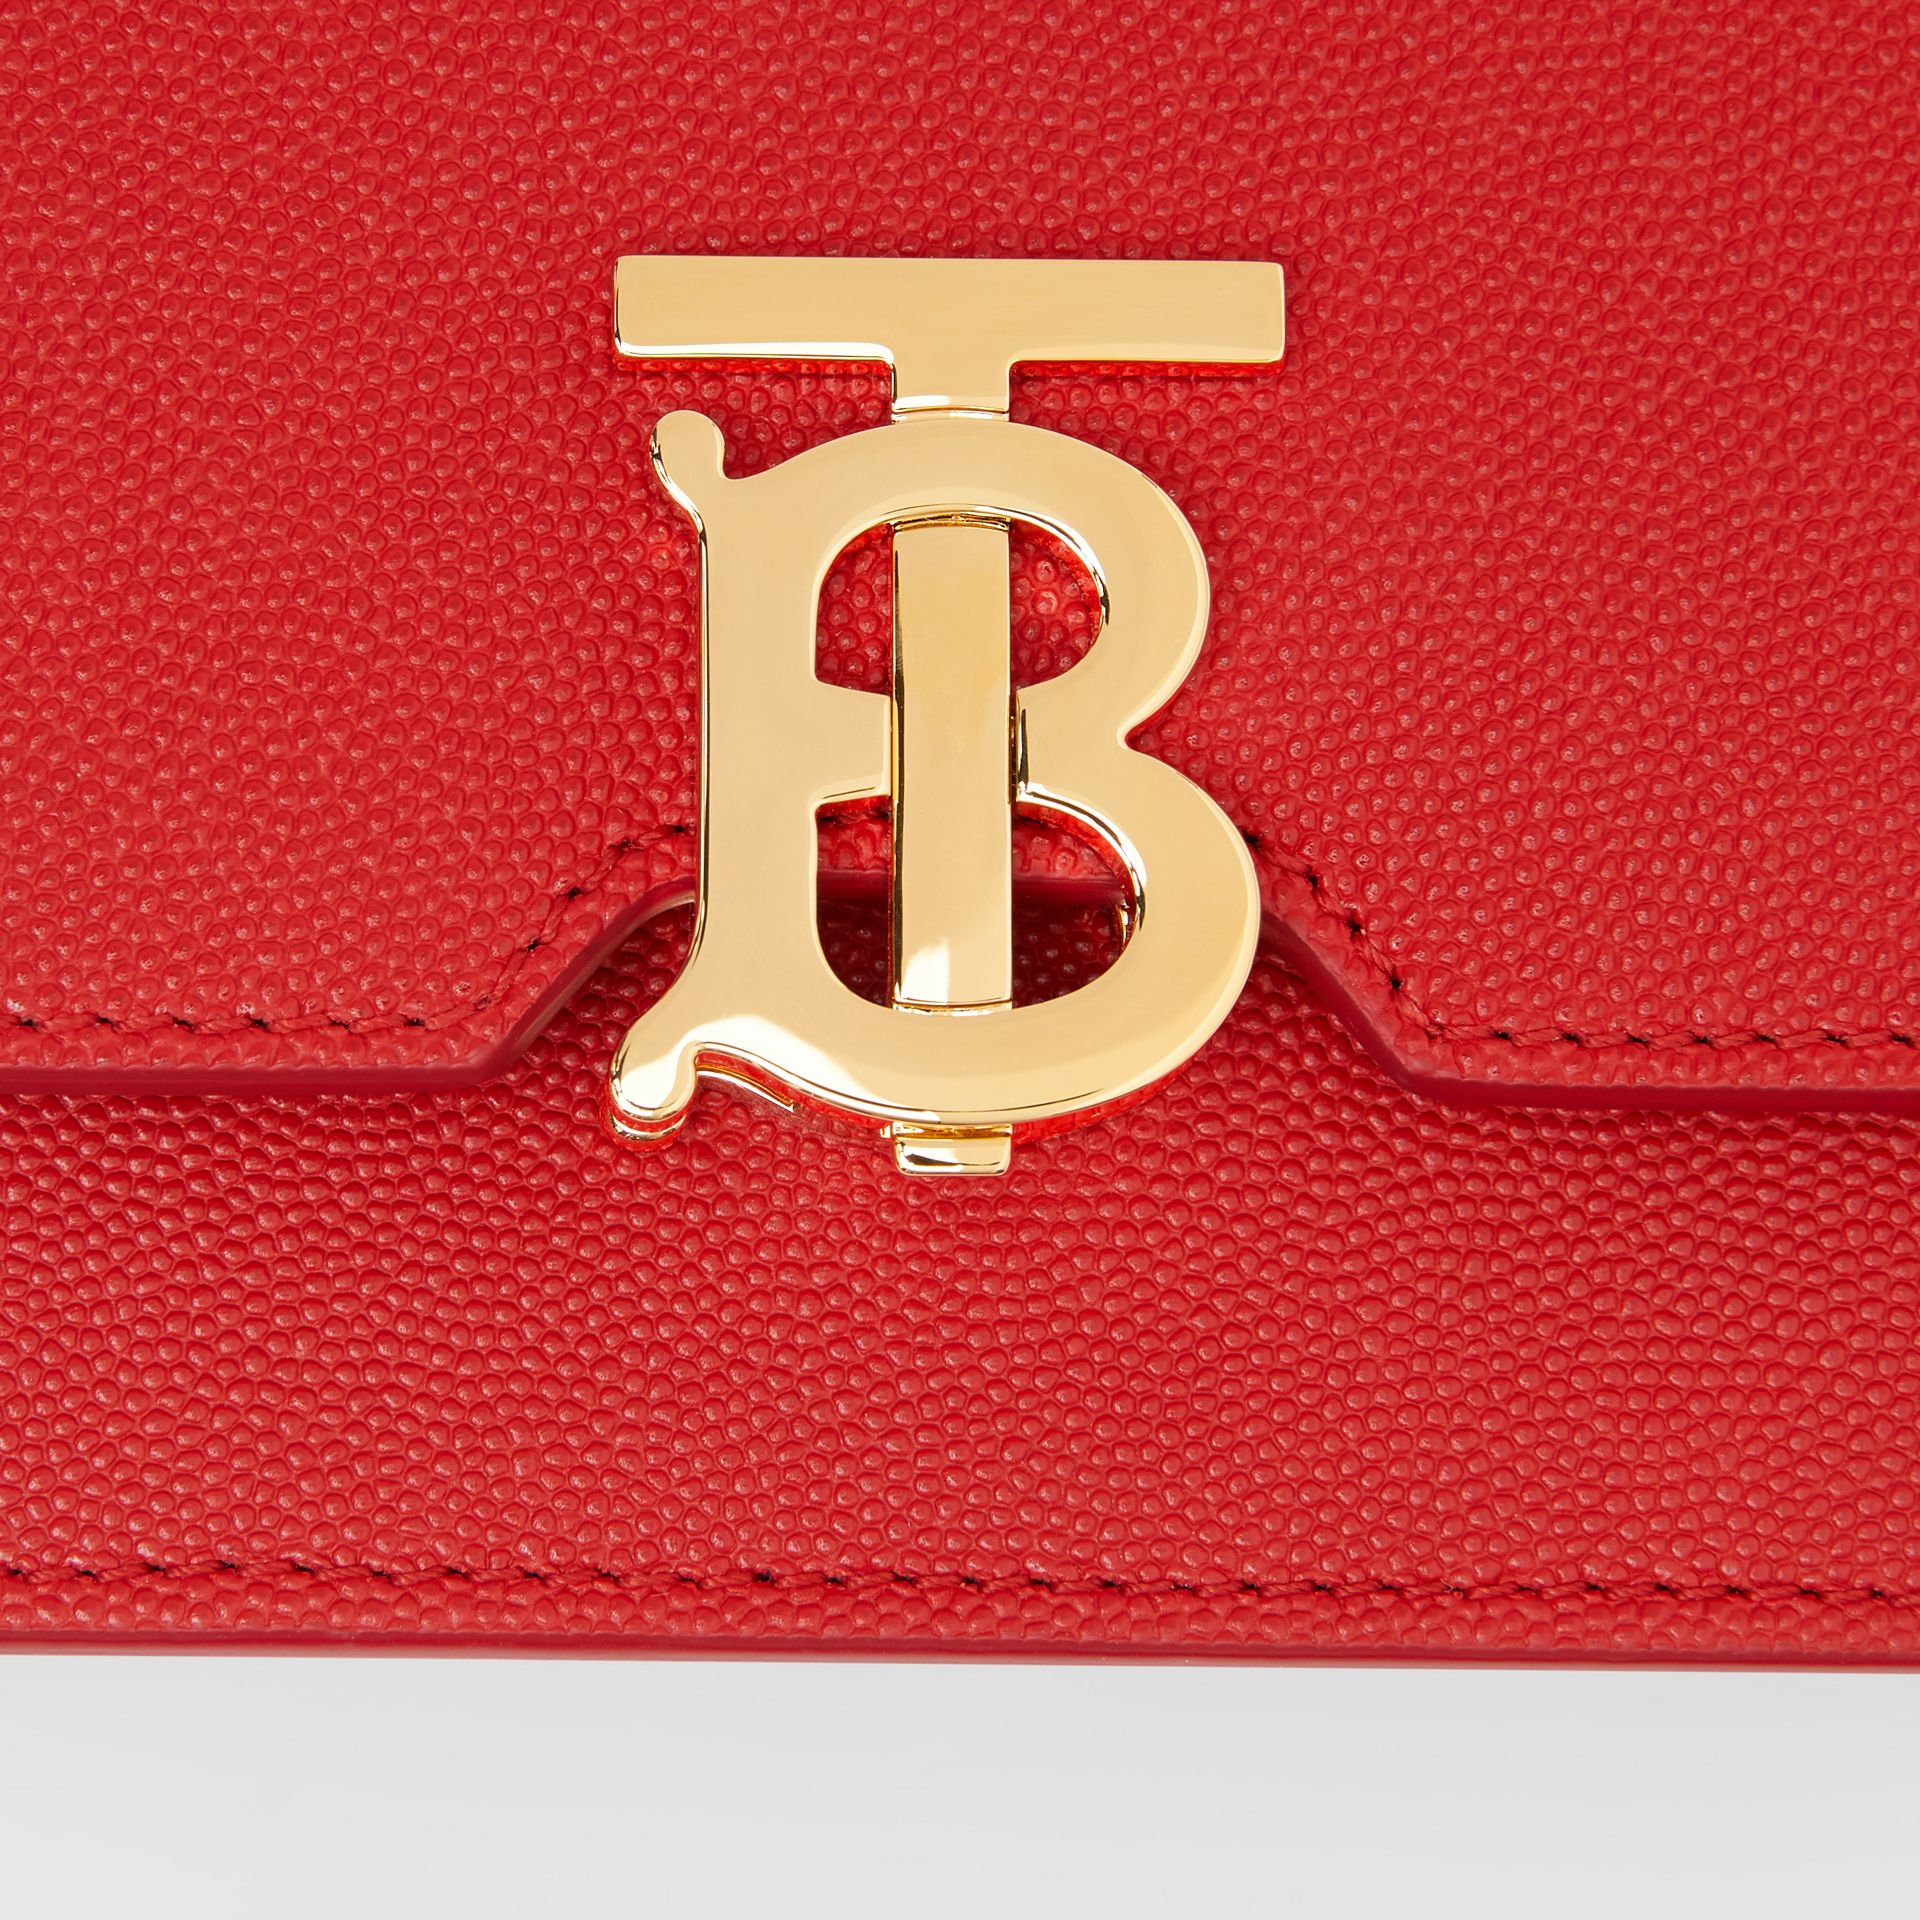 Mini Grainy Leather TB Bag in Bright Red - Women | Burberry Singapore - gallery image 1